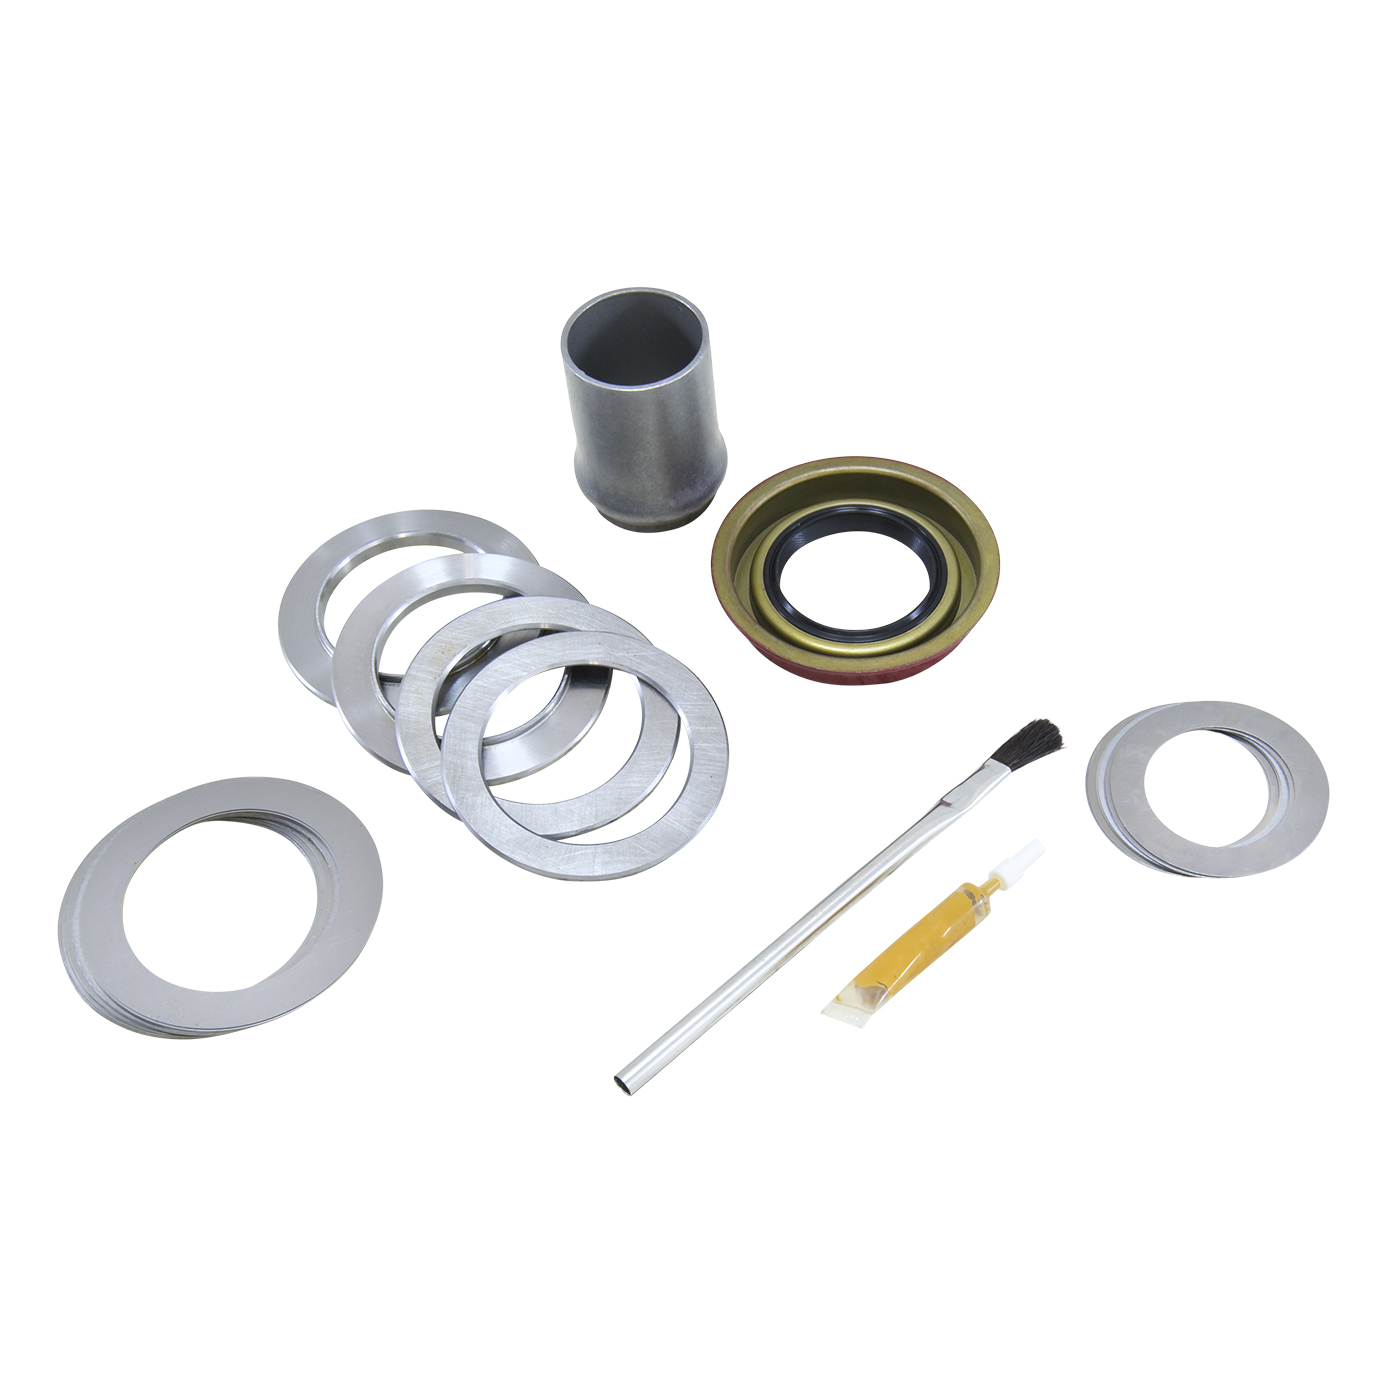 MK GM12T - Yukon Minor install kit for GM 12 bolt truck differential